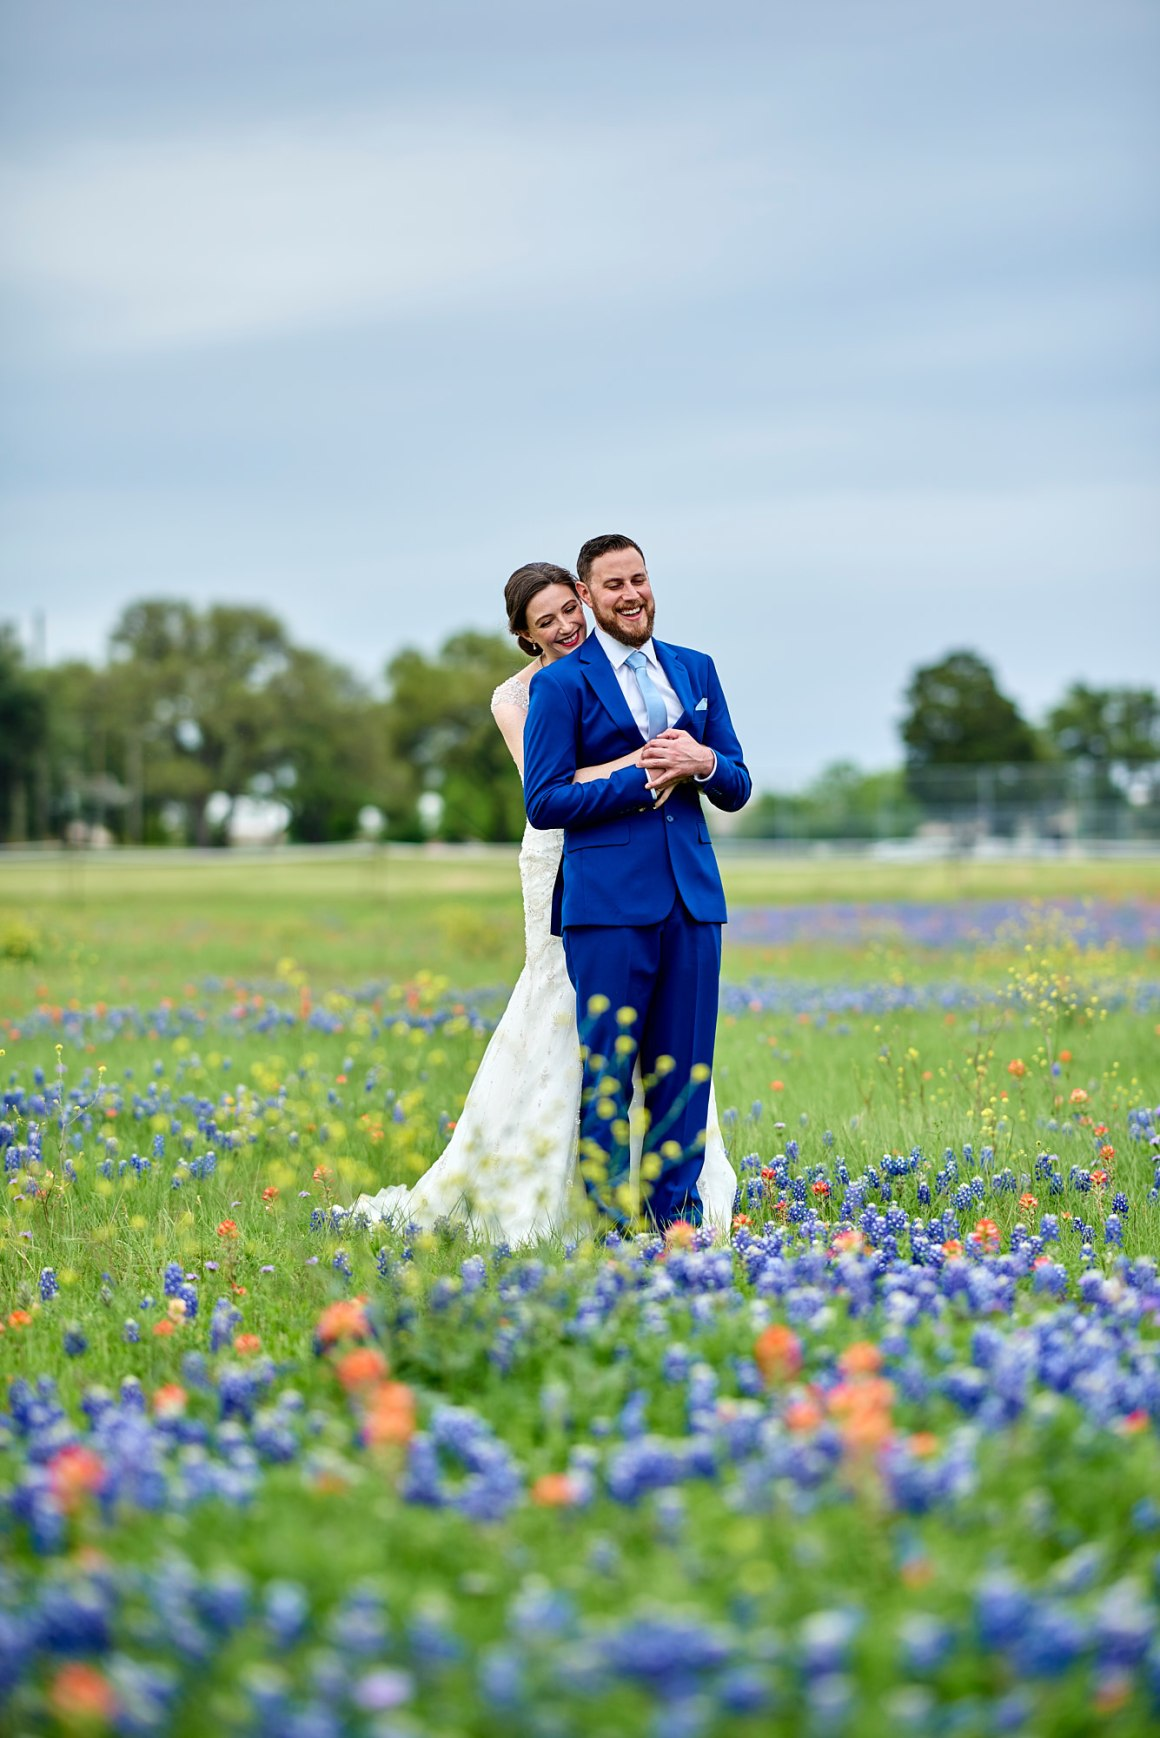 Blue Bonnet First Look - Waco DIY Wedding - Temple Camp Wedding - Hallie and Jonathan - Green Family Camp - Blue Bonnet Wedding